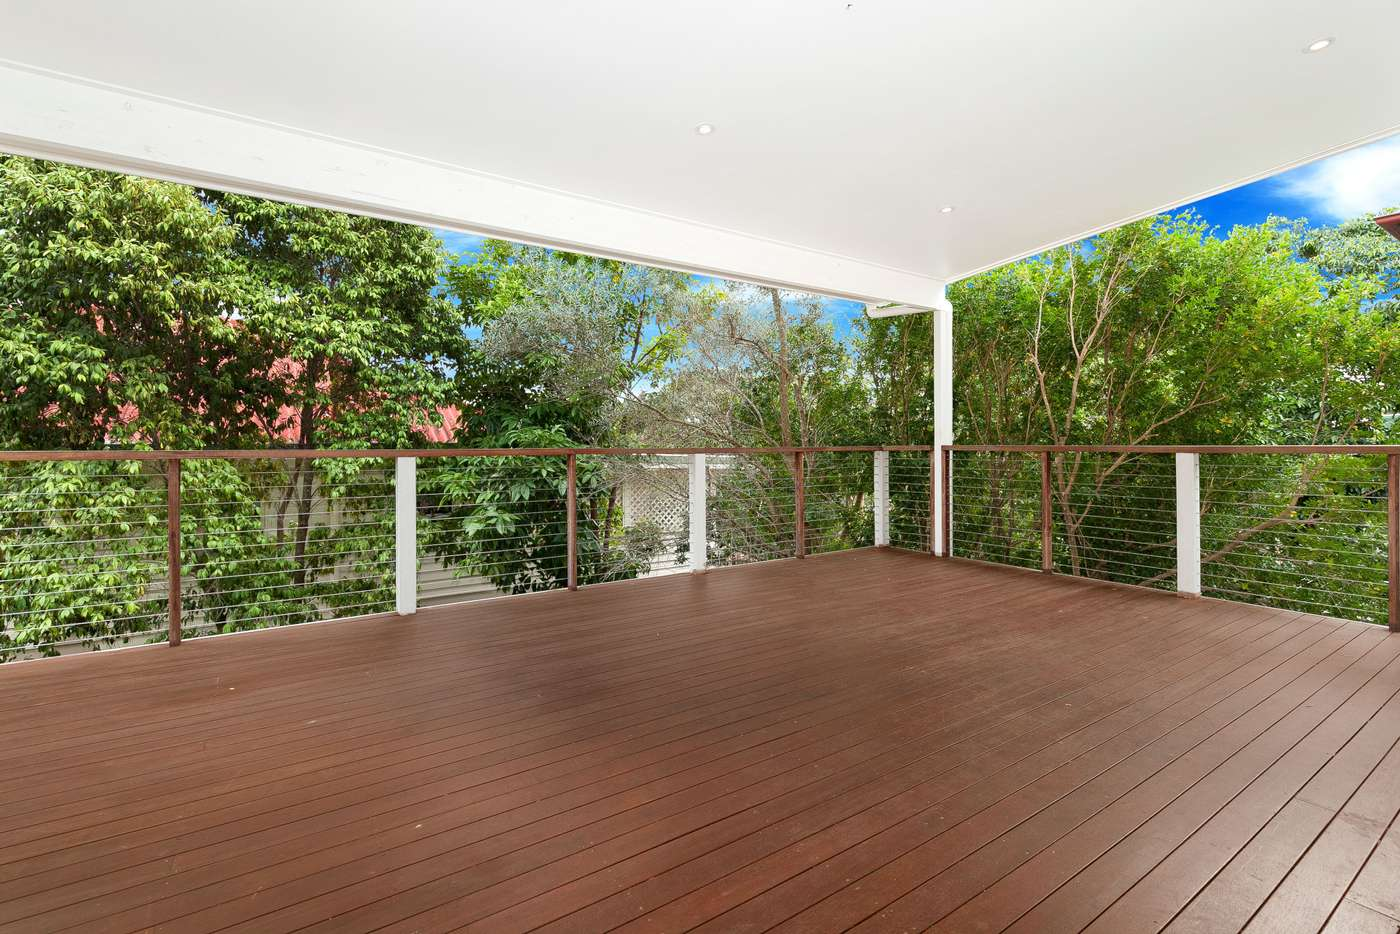 Main view of Homely house listing, 126 Richmond Road, Morningside QLD 4170